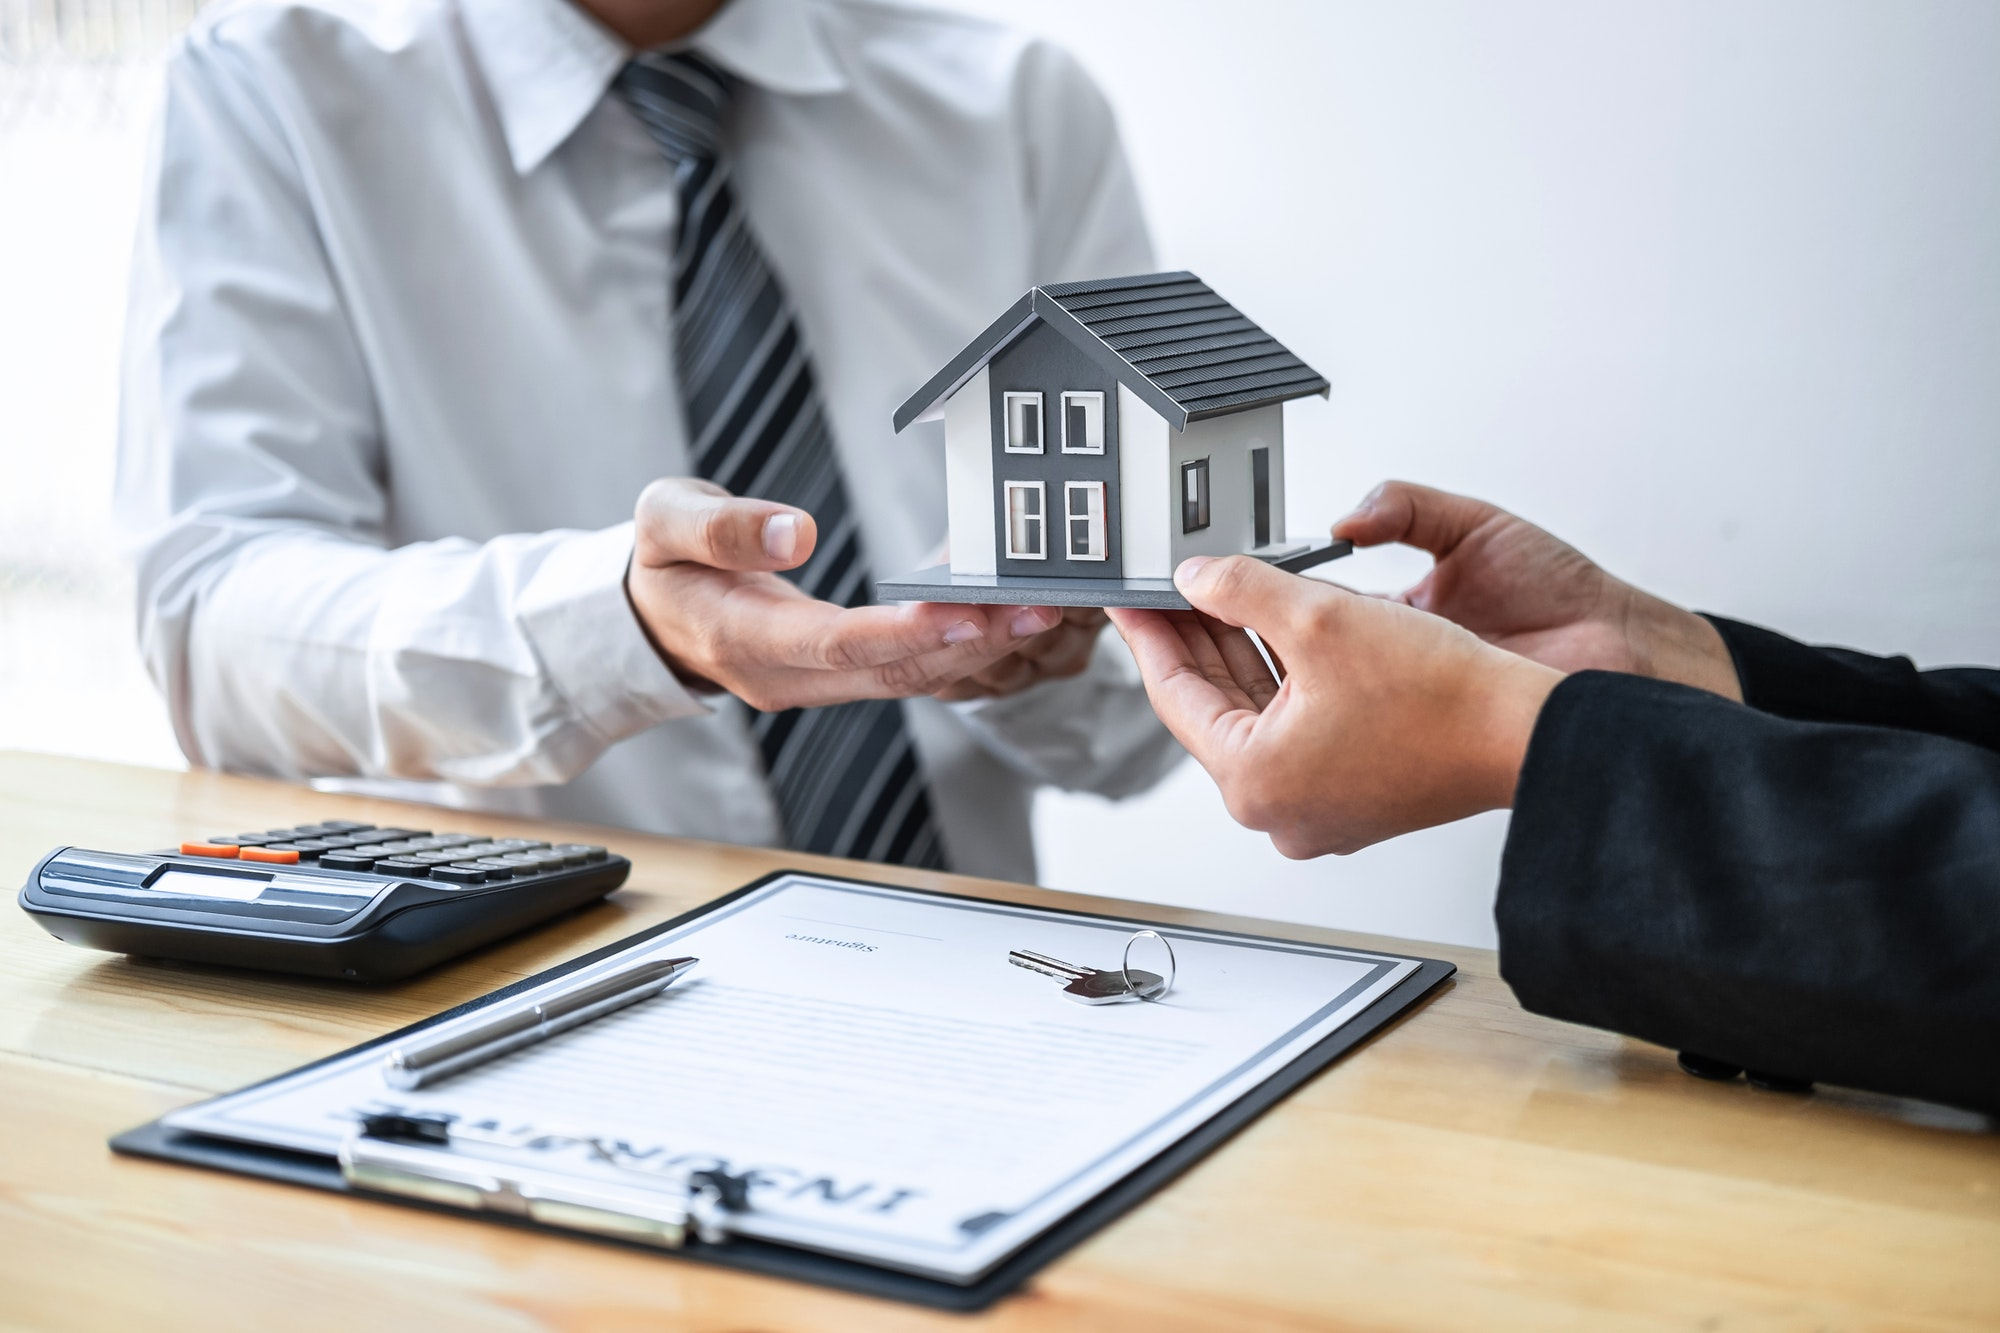 Estate agent are presenting home loan and giving house to client after discussing and signing